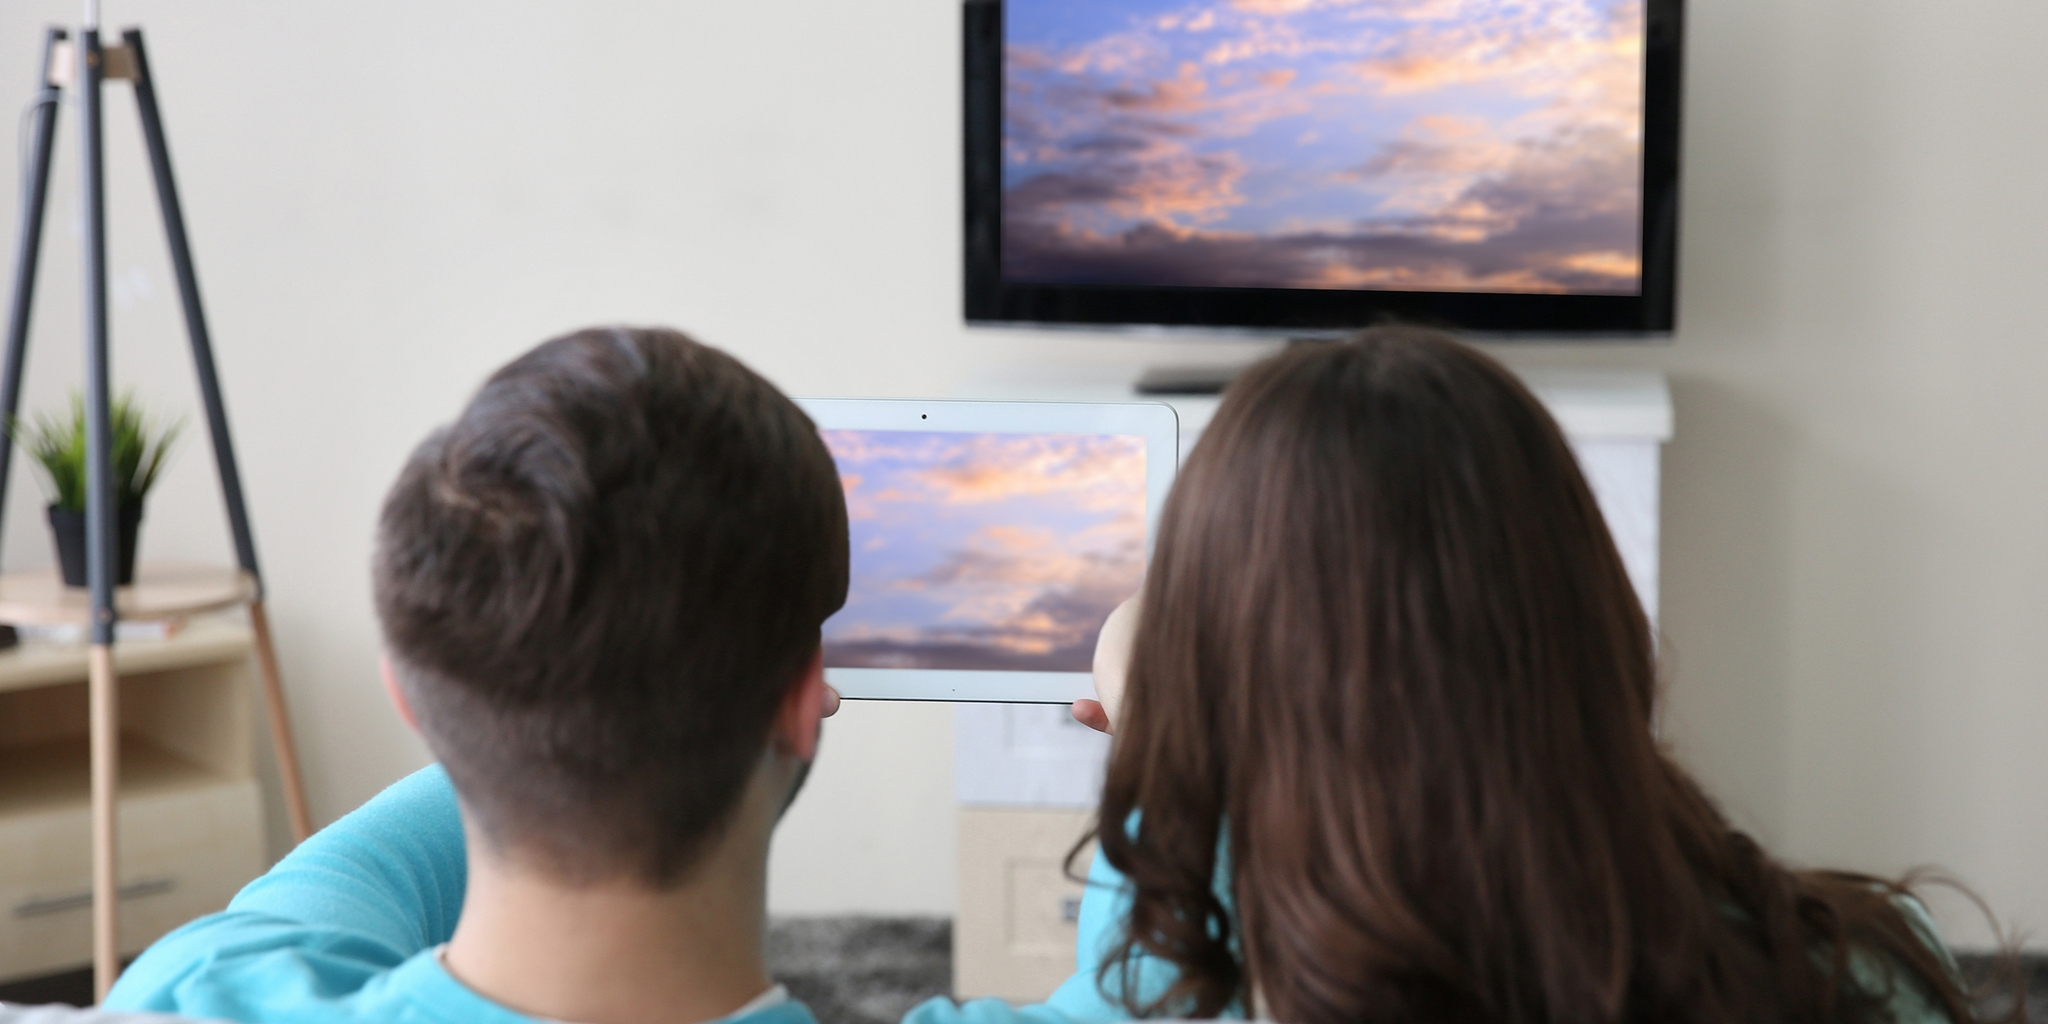 couple looking at picture on both ipad and tv